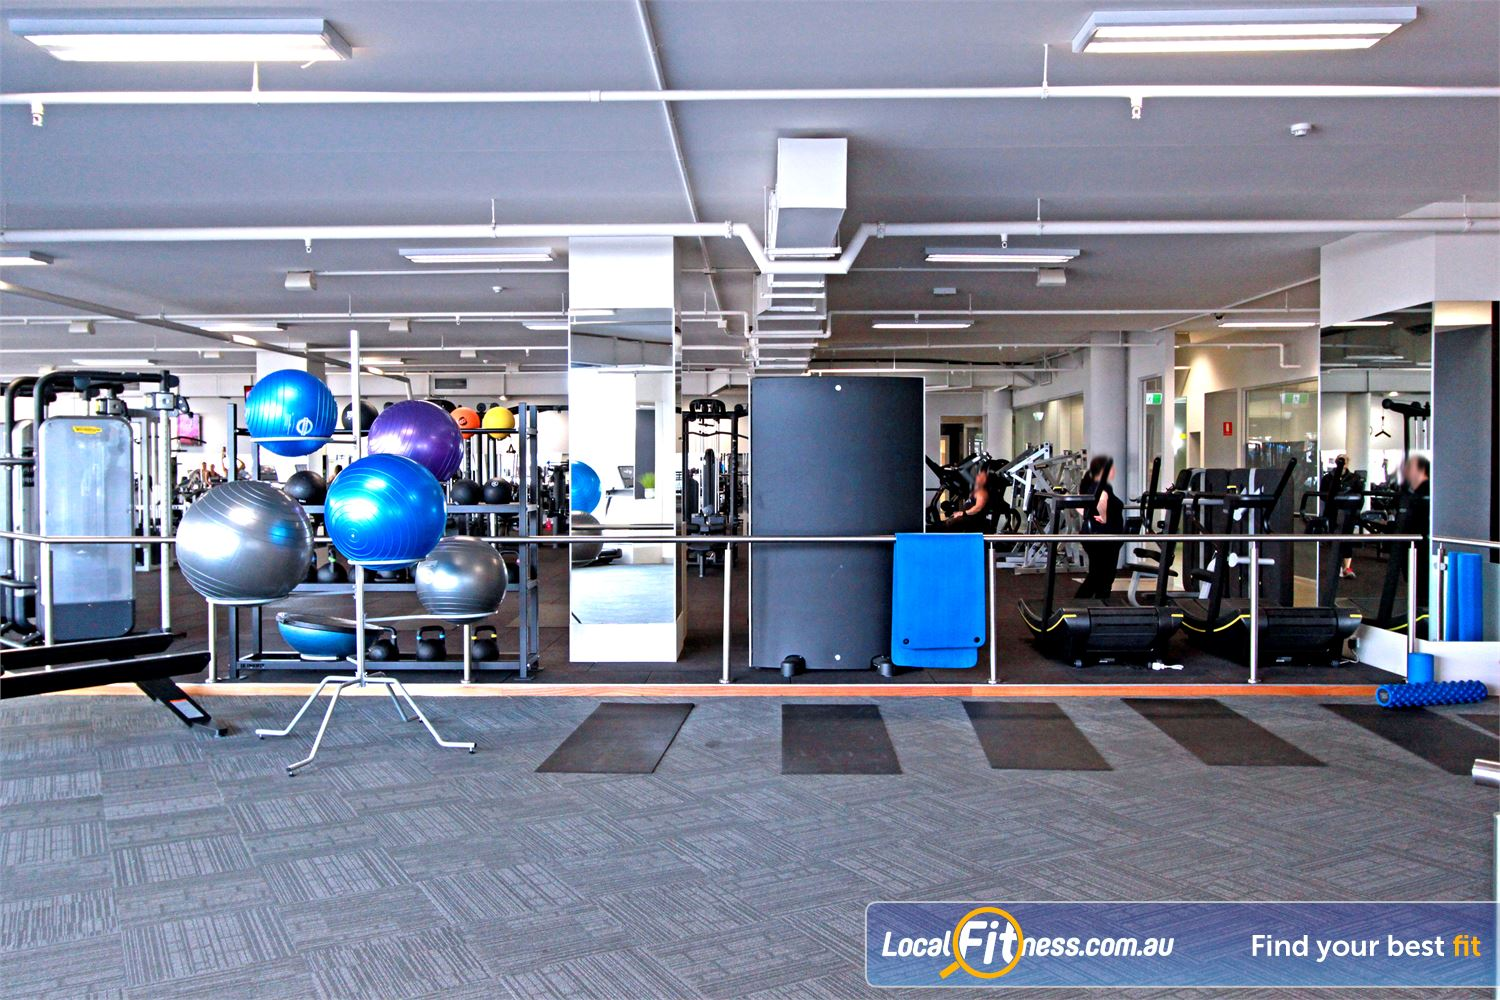 South Pacific Health Clubs Mentone Stretching zone with mats, fitballs, foam rollers and more.